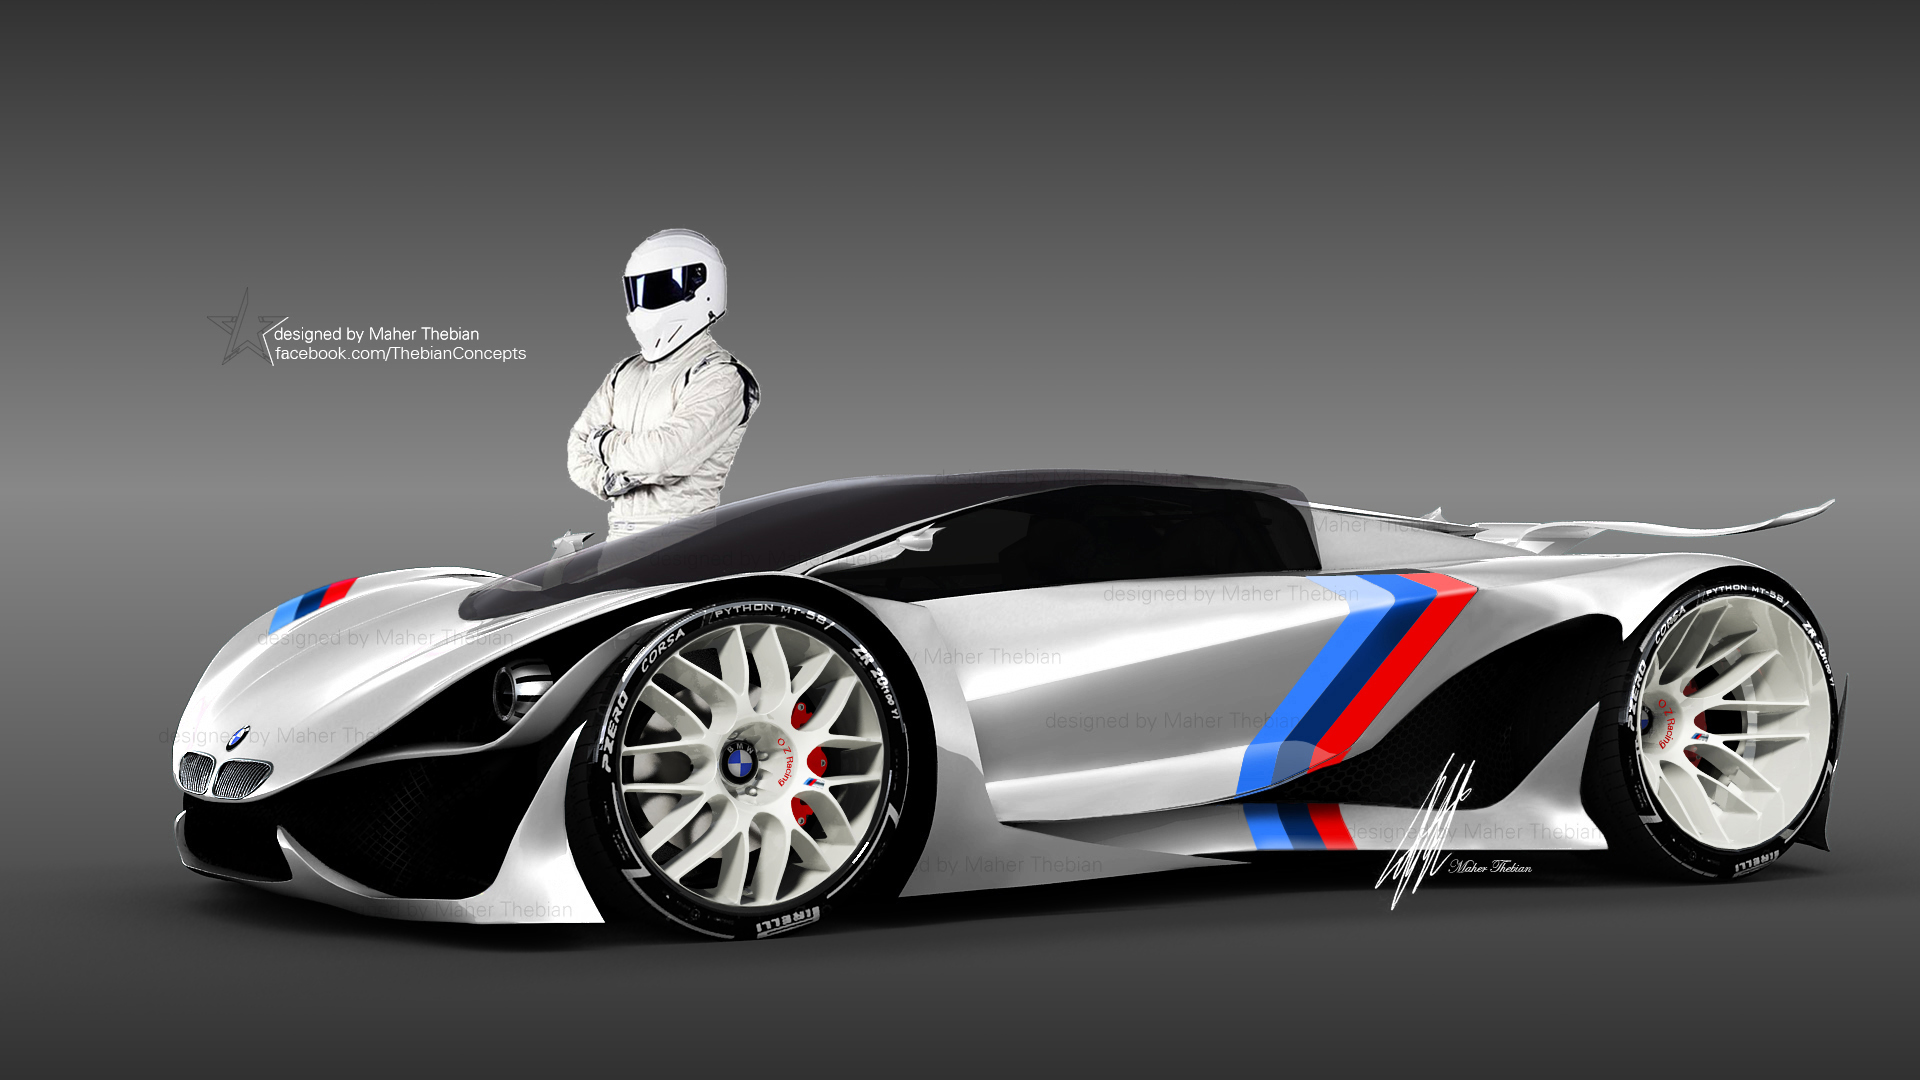 Design Concepts Wallpaper : Bmw mt m power concept full hd wallpaper and background